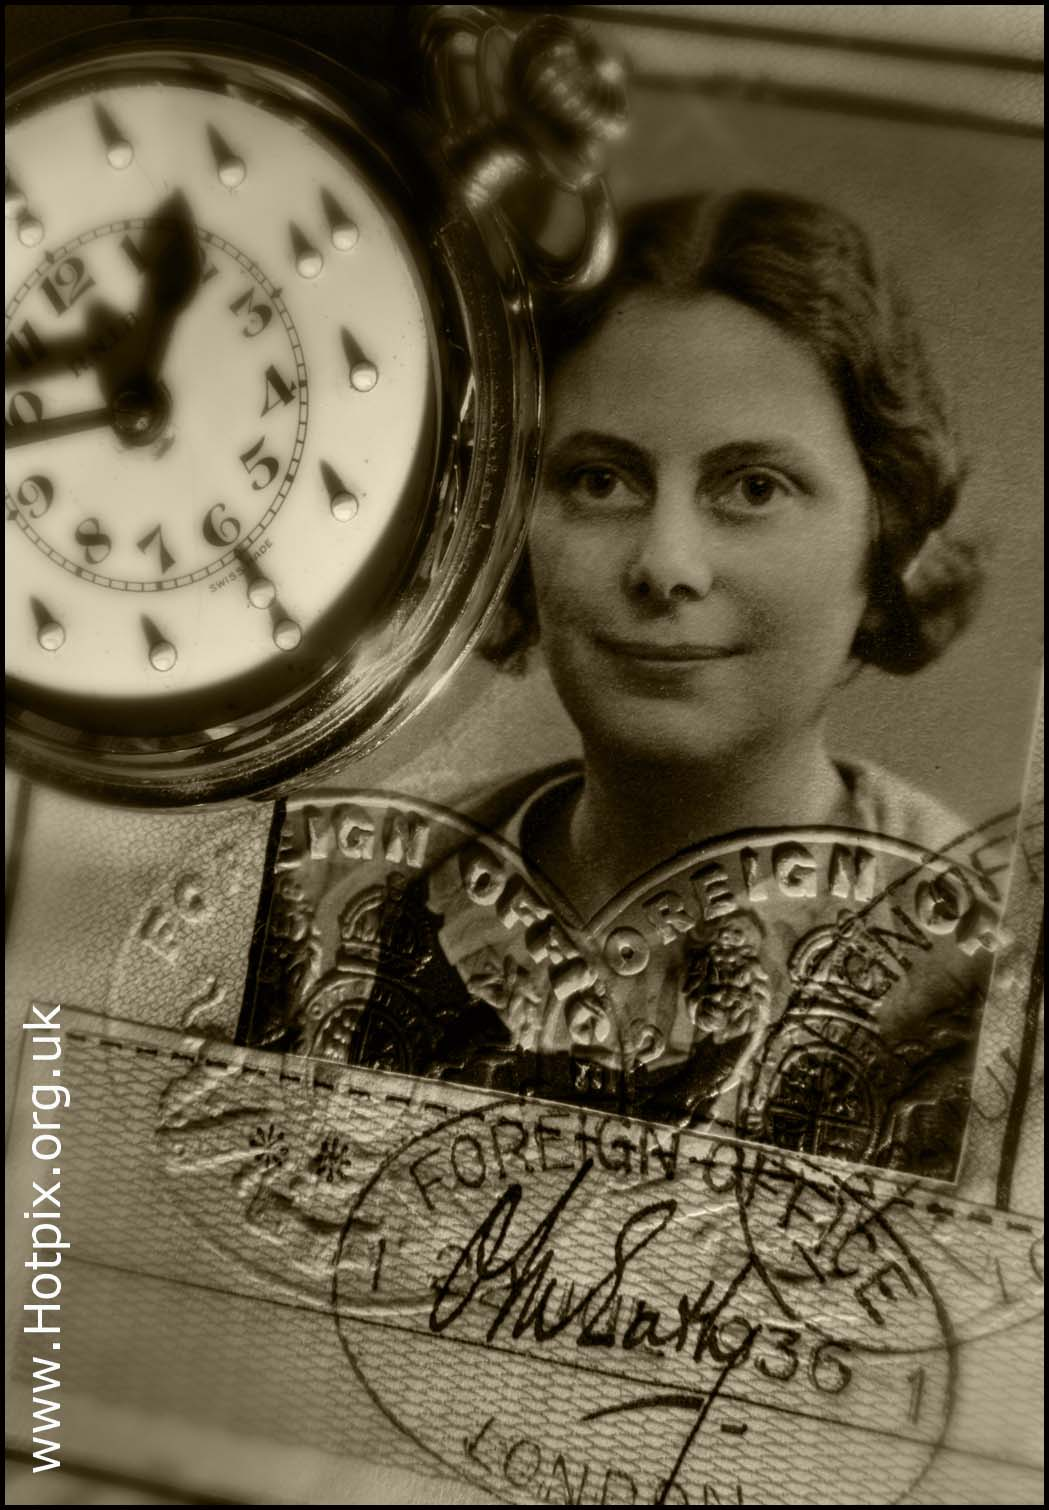 Granny,Passport,British,British Passport,watch,RNIB,blind,braile,braille,partially,sighted,sepia,black,white,photograph,woman,lady,grandmother,document,stamp,stamps,London,1936,prewar,pre,war,secret,spy,code,codebreaker,blechley,park,enigma,MI5,MI6,under,cover,undercover,alied,soldier,WRAF,RAF,air,ministry,airministry,ATS,Auxiliary,Territorial,Services,foreign,office,Foreign Office,clock,hands,pocket,pocketwatch,grandma,grannie,paper,paperwork,vintage,old,documents,B/W,mono,monochrome,this photo rocks,clocks,time,photos,grannies,tonysmith,tony,smith,HOT PIX